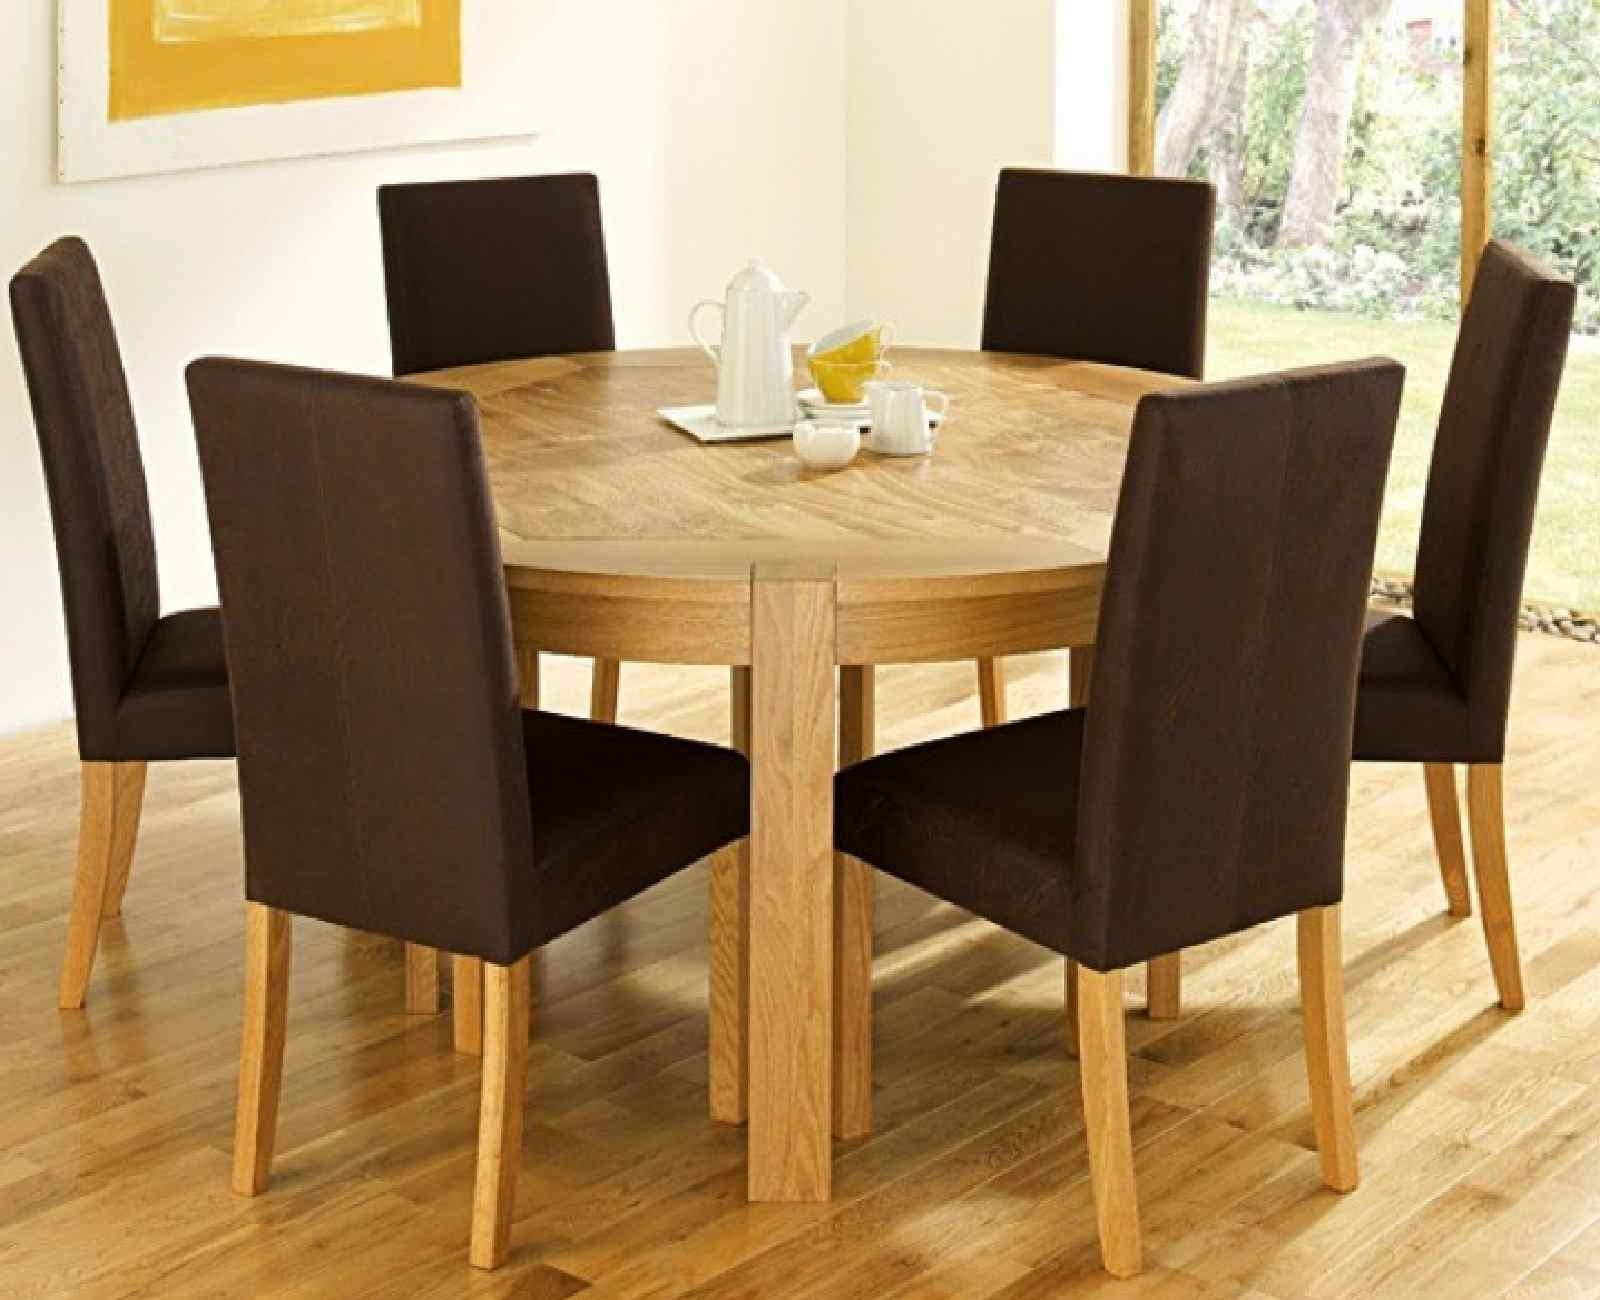 Newest Round Dining Table Set For 6 - Castrophotos pertaining to Parquet 6 Piece Dining Sets